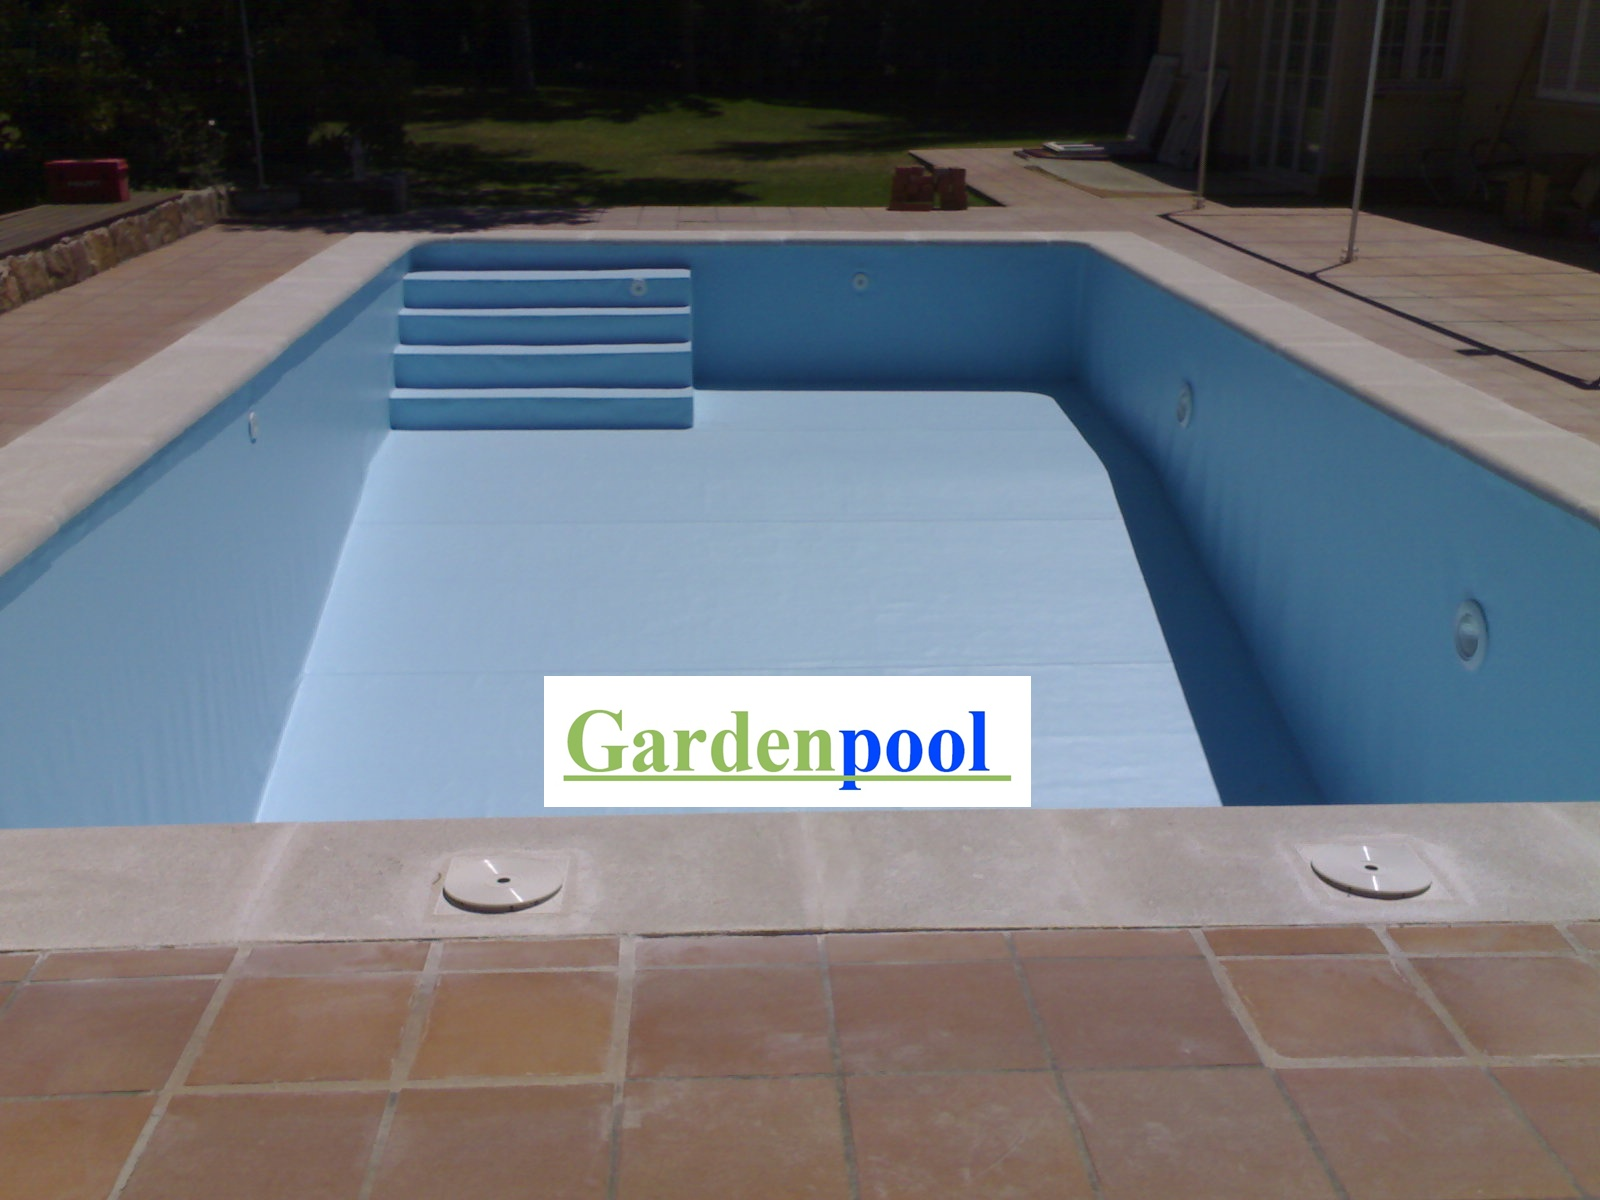 Reformas de piscinas en madrid gardenpool for Piscina ajalvir